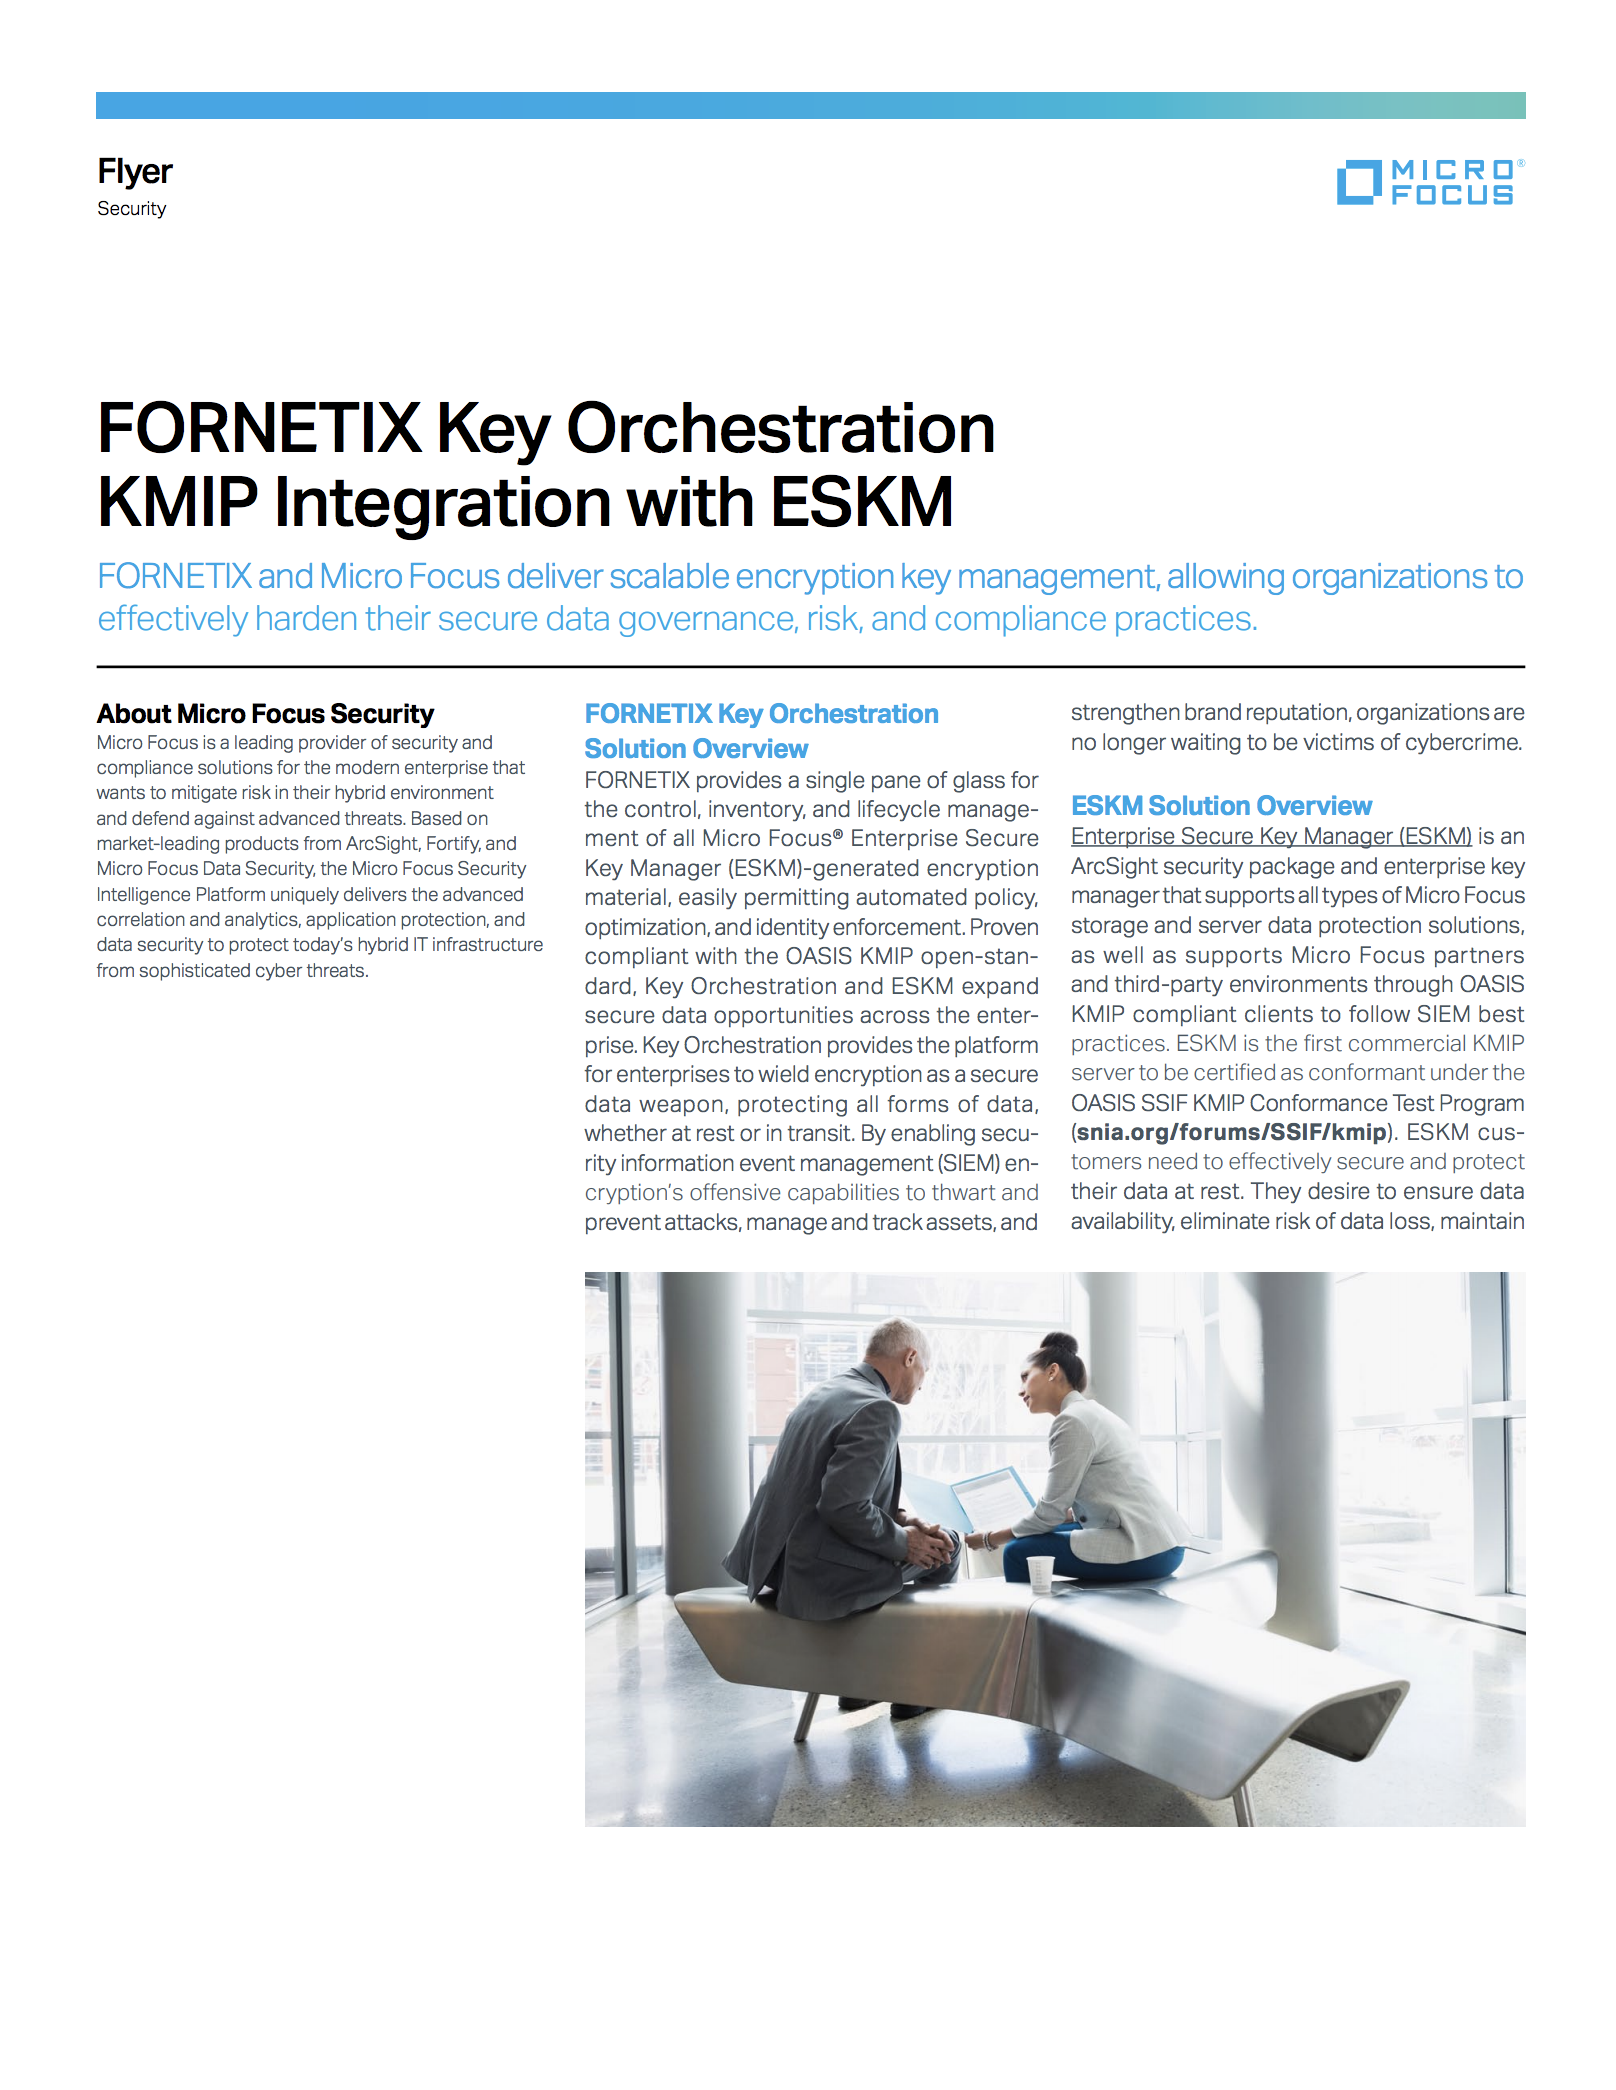 FORNETIX Key Orchestration KMIP Integration with ESKM